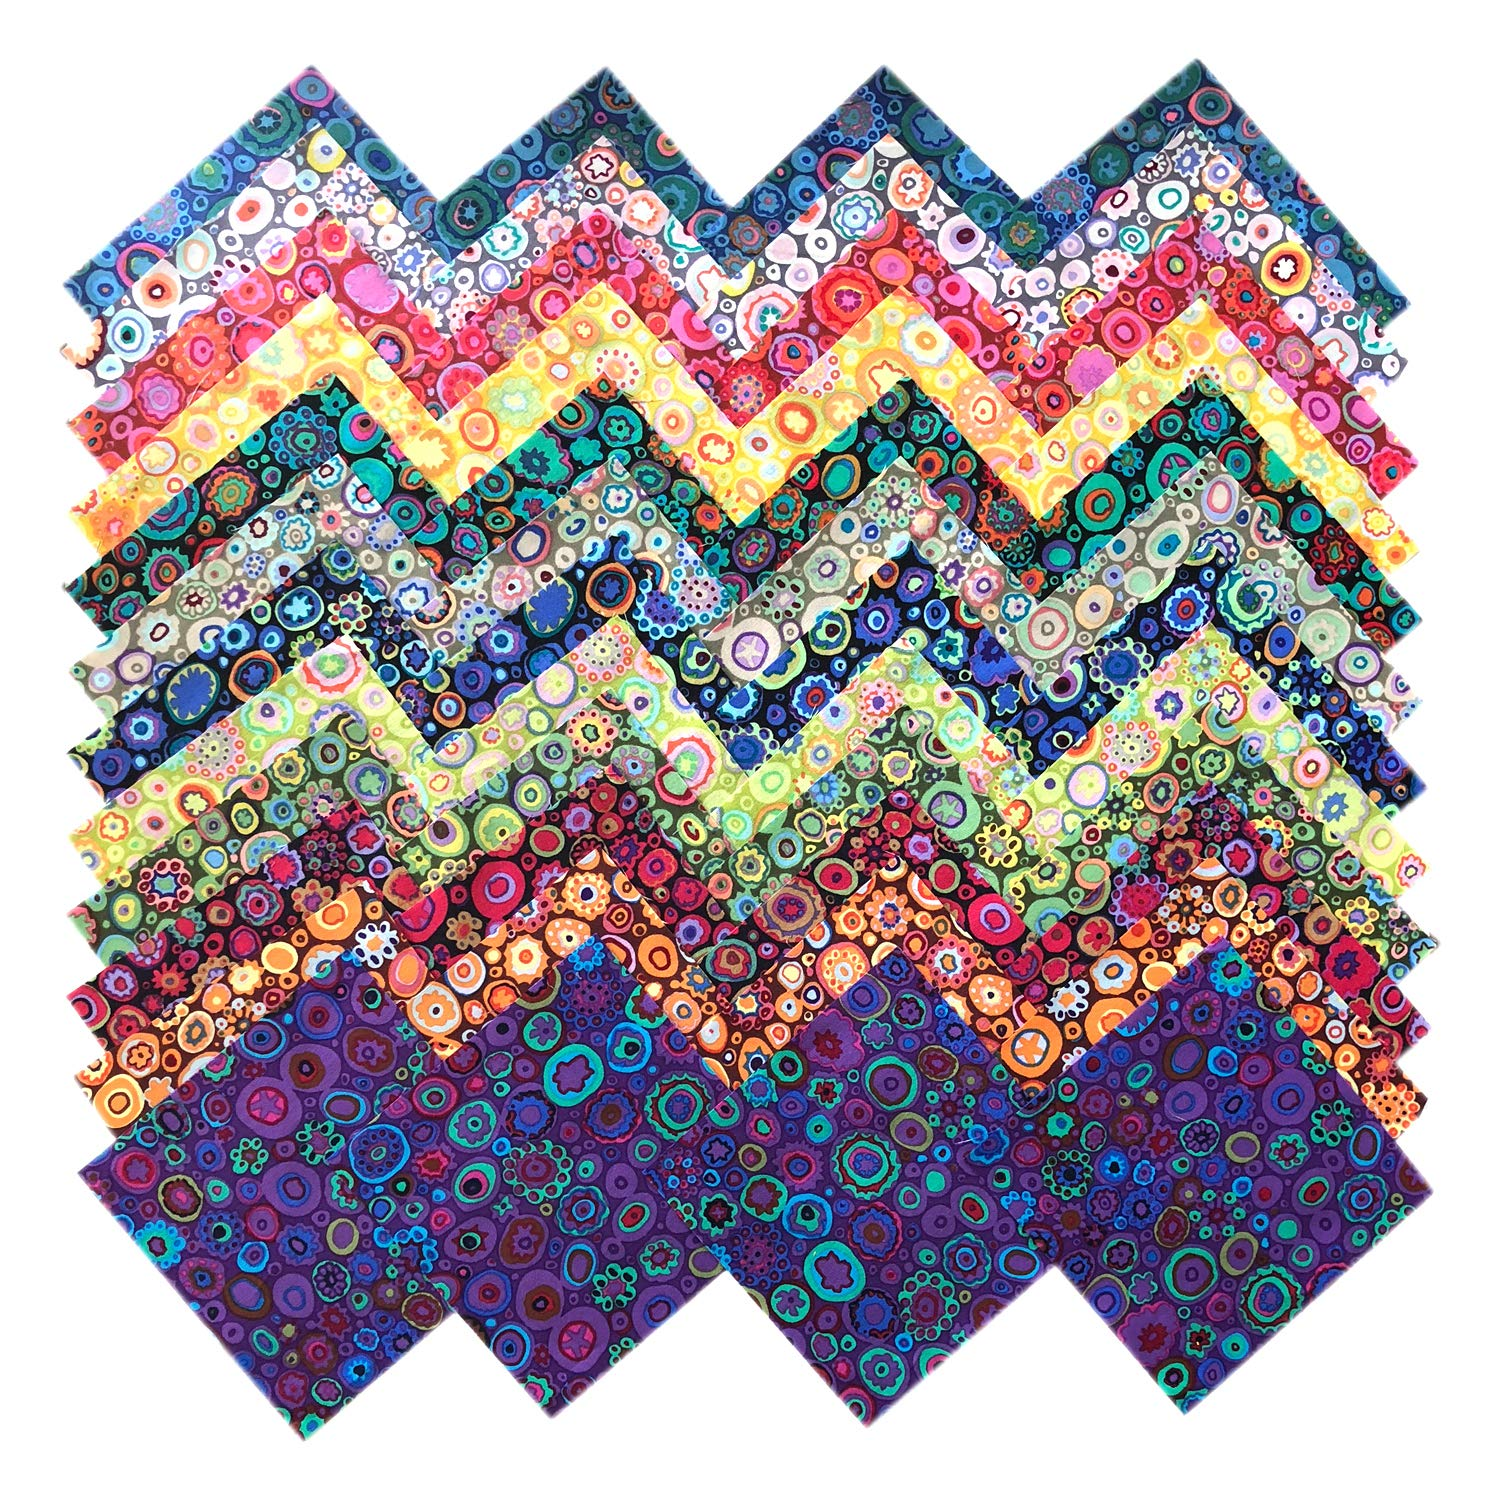 Kaffe Fassett Collective Paperweight Precut 5-inch Cotton Fabric Quilting Squares Charm Pack Assortment Westminster Fibers